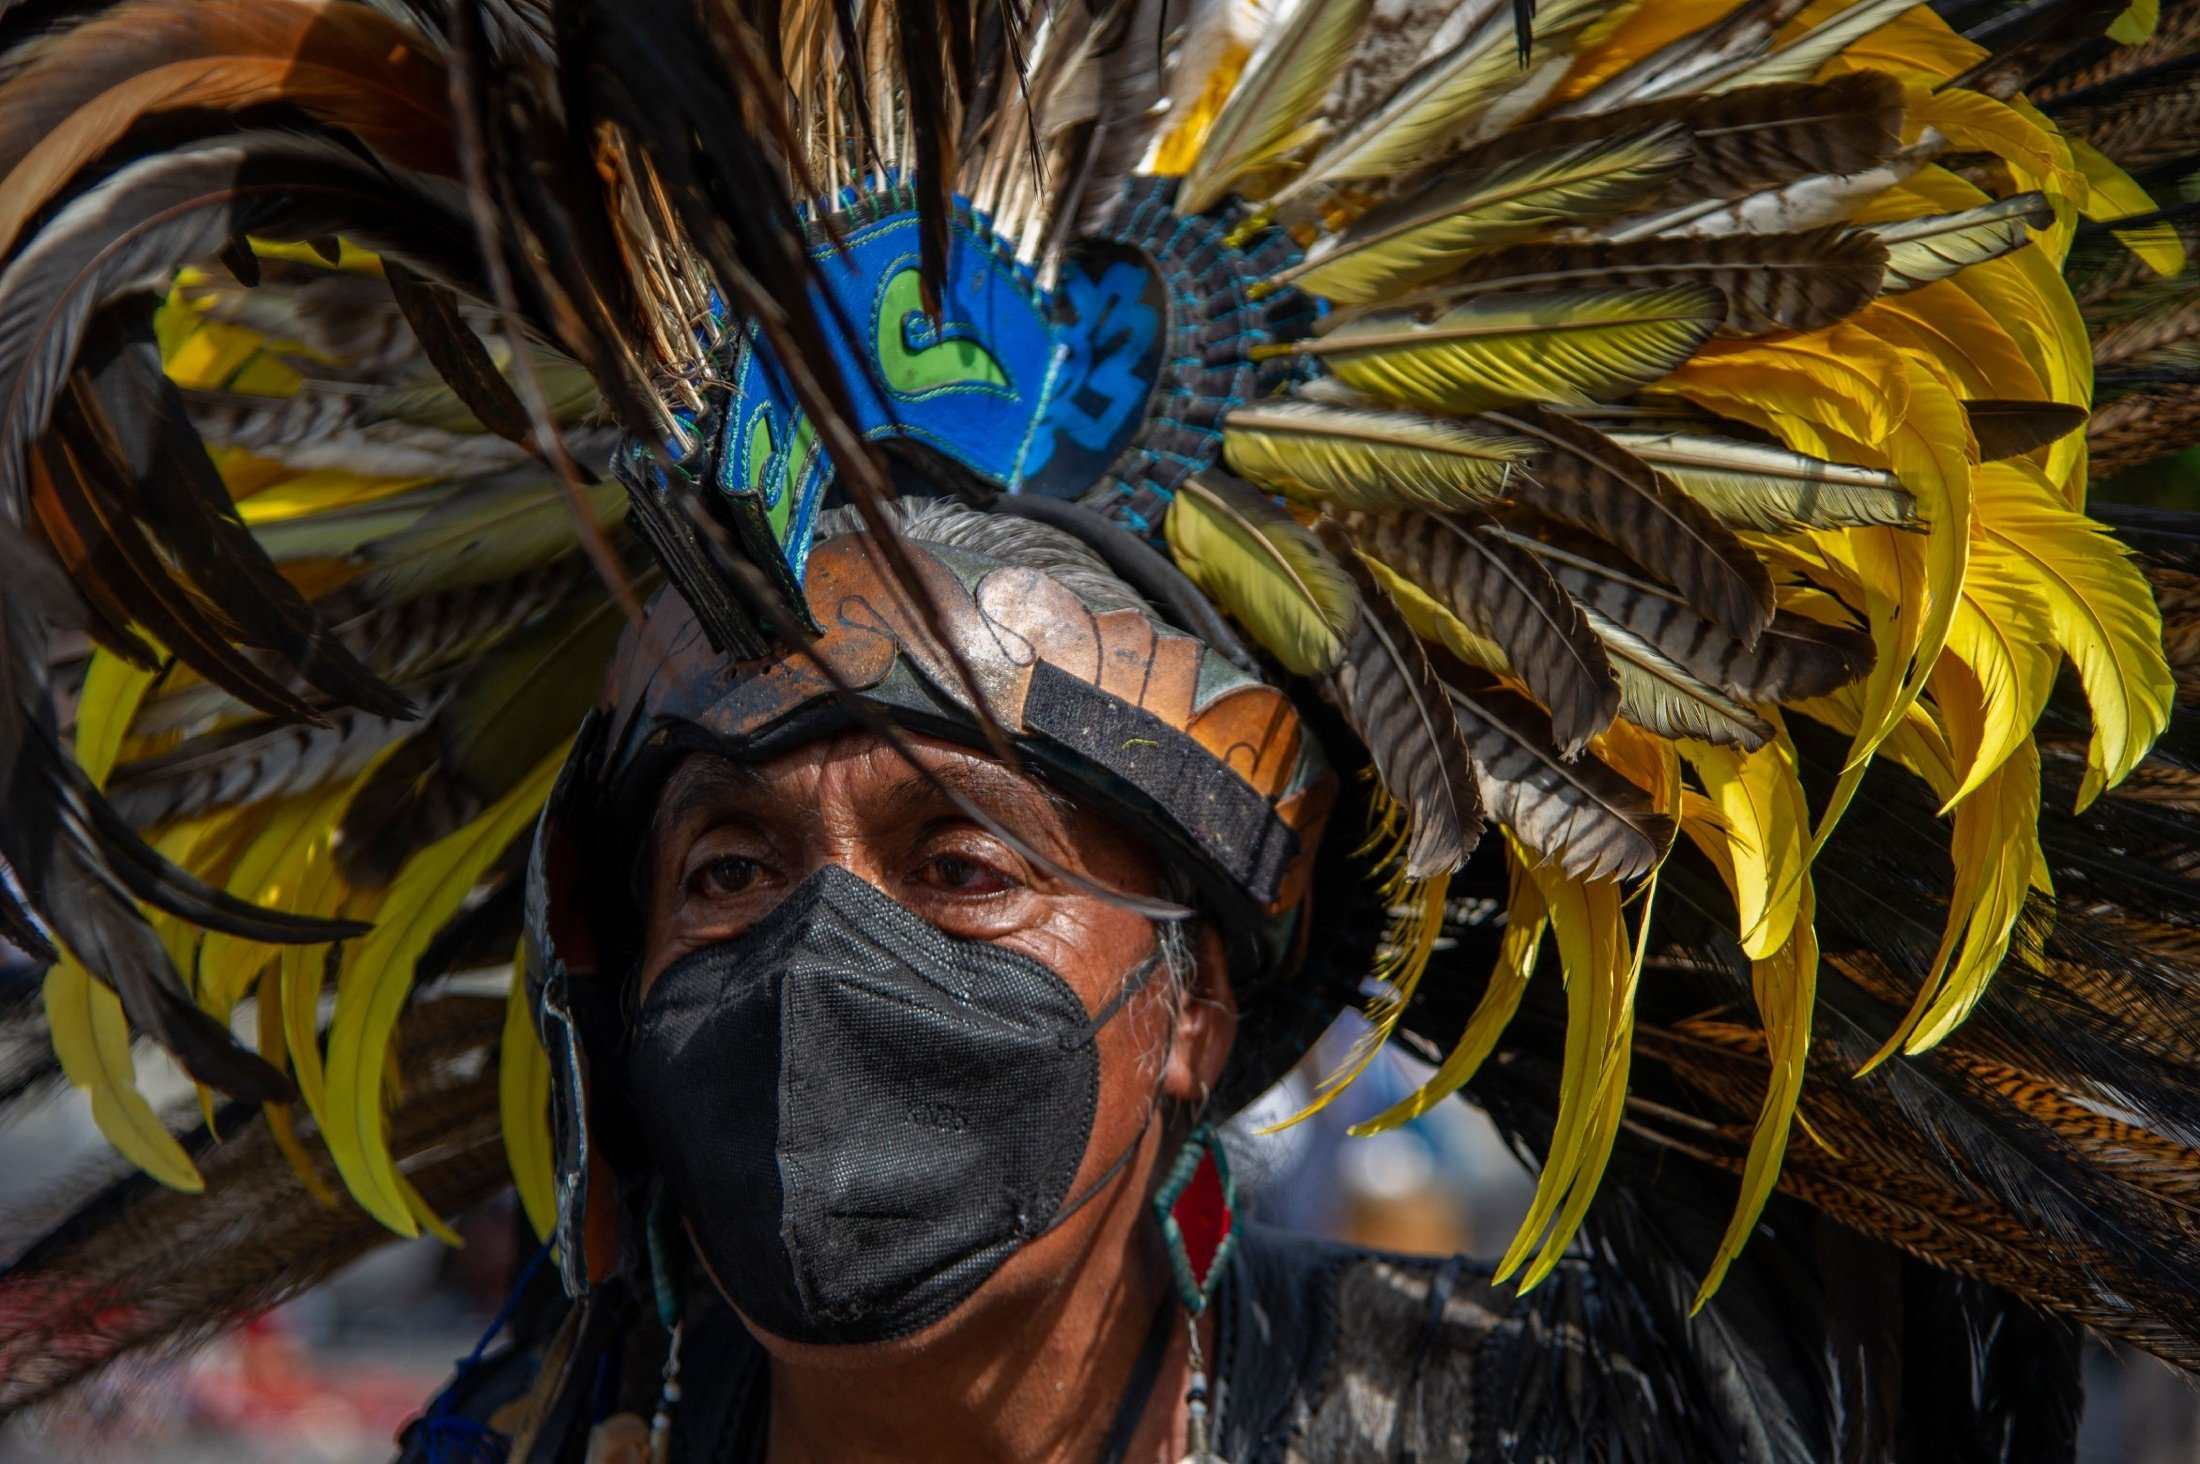 A man wears a Penacho before performing an Aztec dance at the Zocalo square in Mexico City, Mexico, July 31, 2021. (AFP Photo)